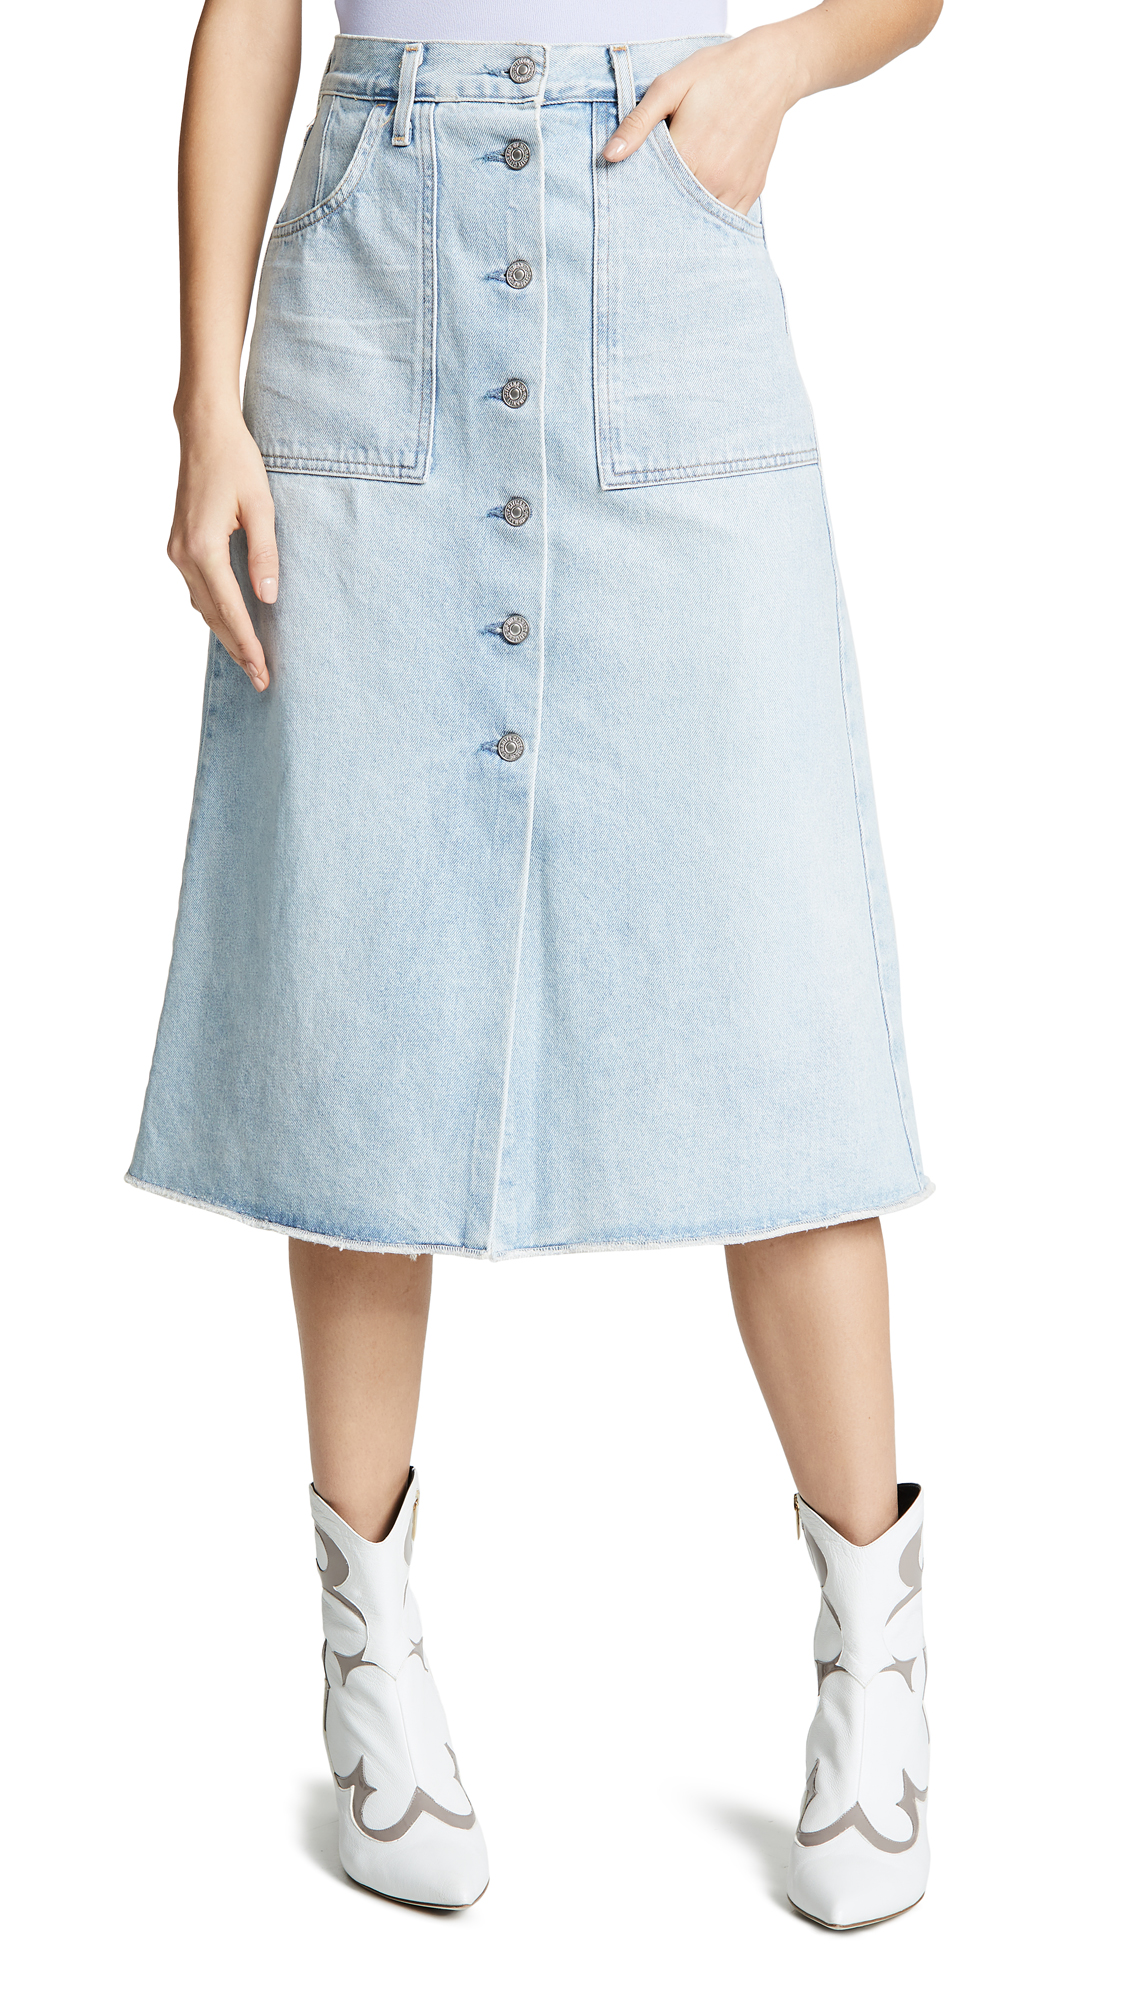 Citizens of Humanity Amelia Skirt - Sea Spray